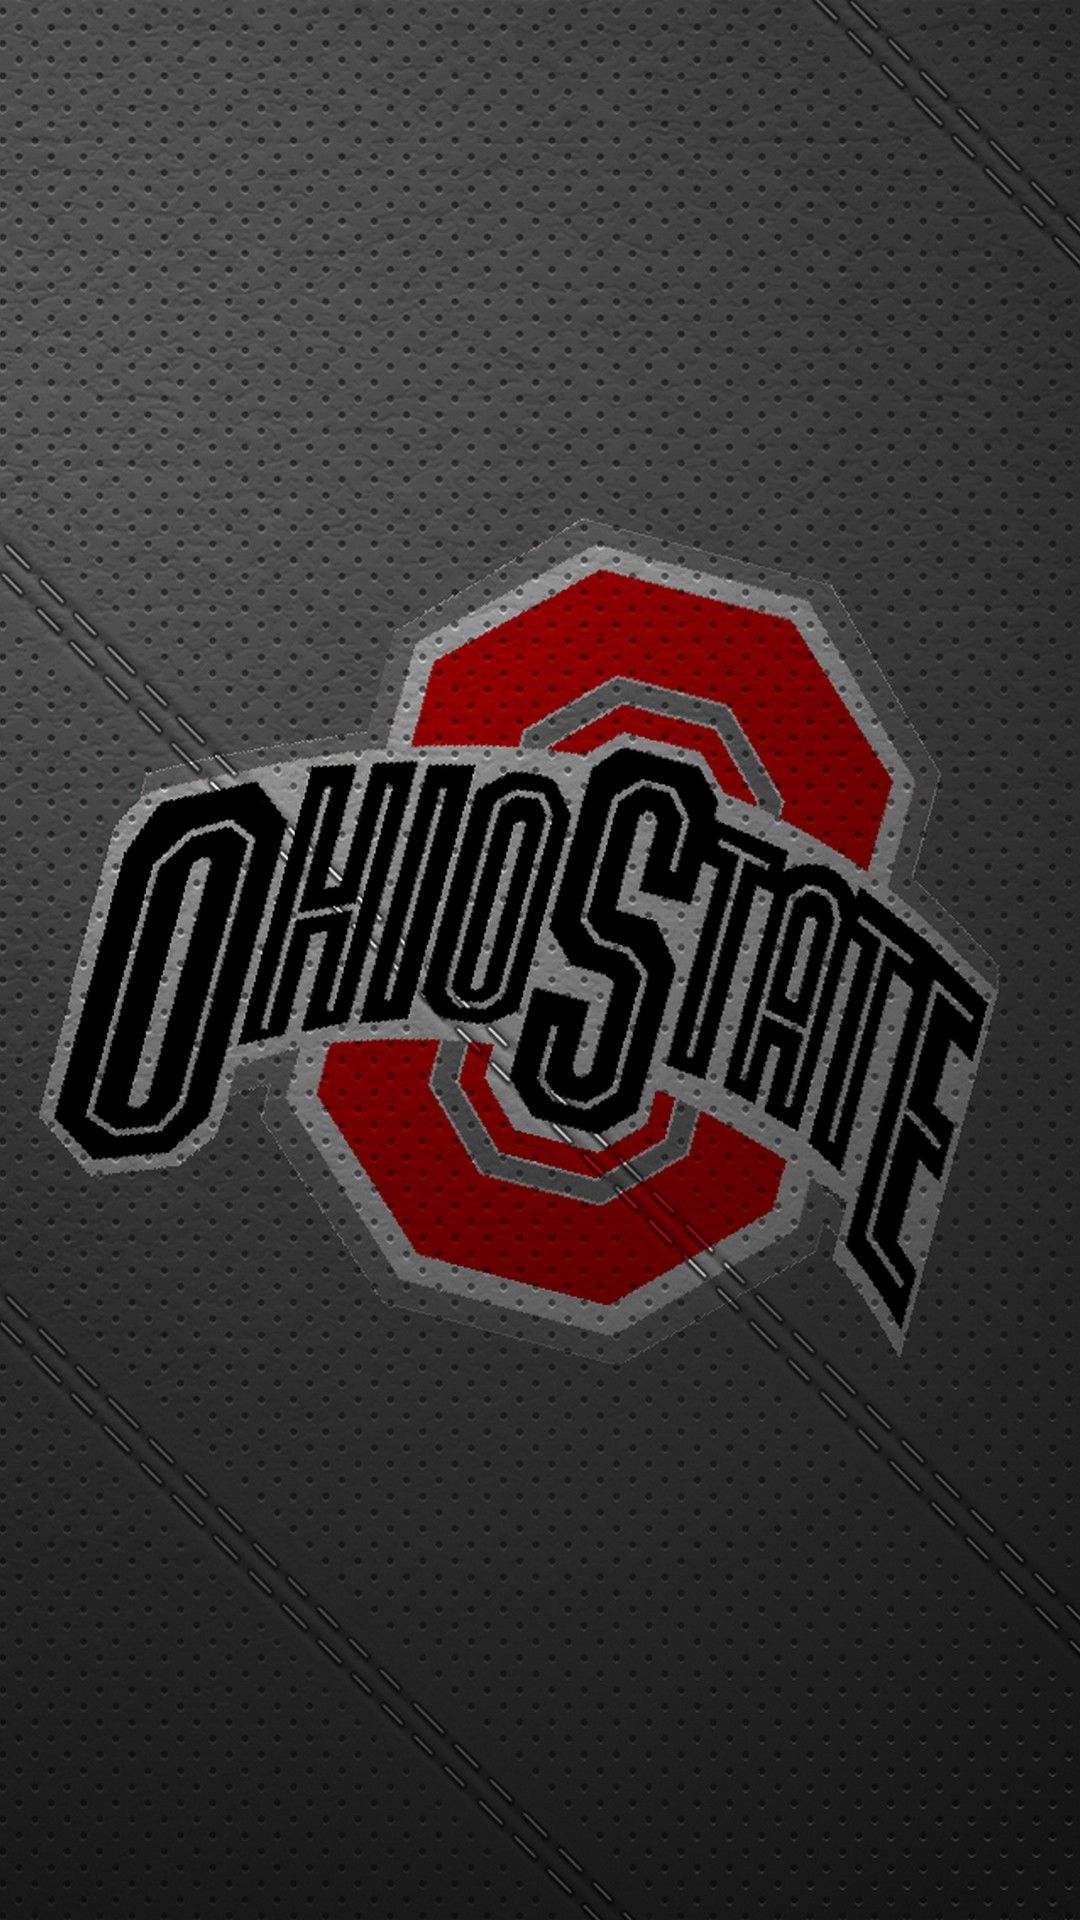 Cool Ohio State Background Picture In 2020 Ohio State Buckeyes Football Ohio State Football Ohio State Wallpaper